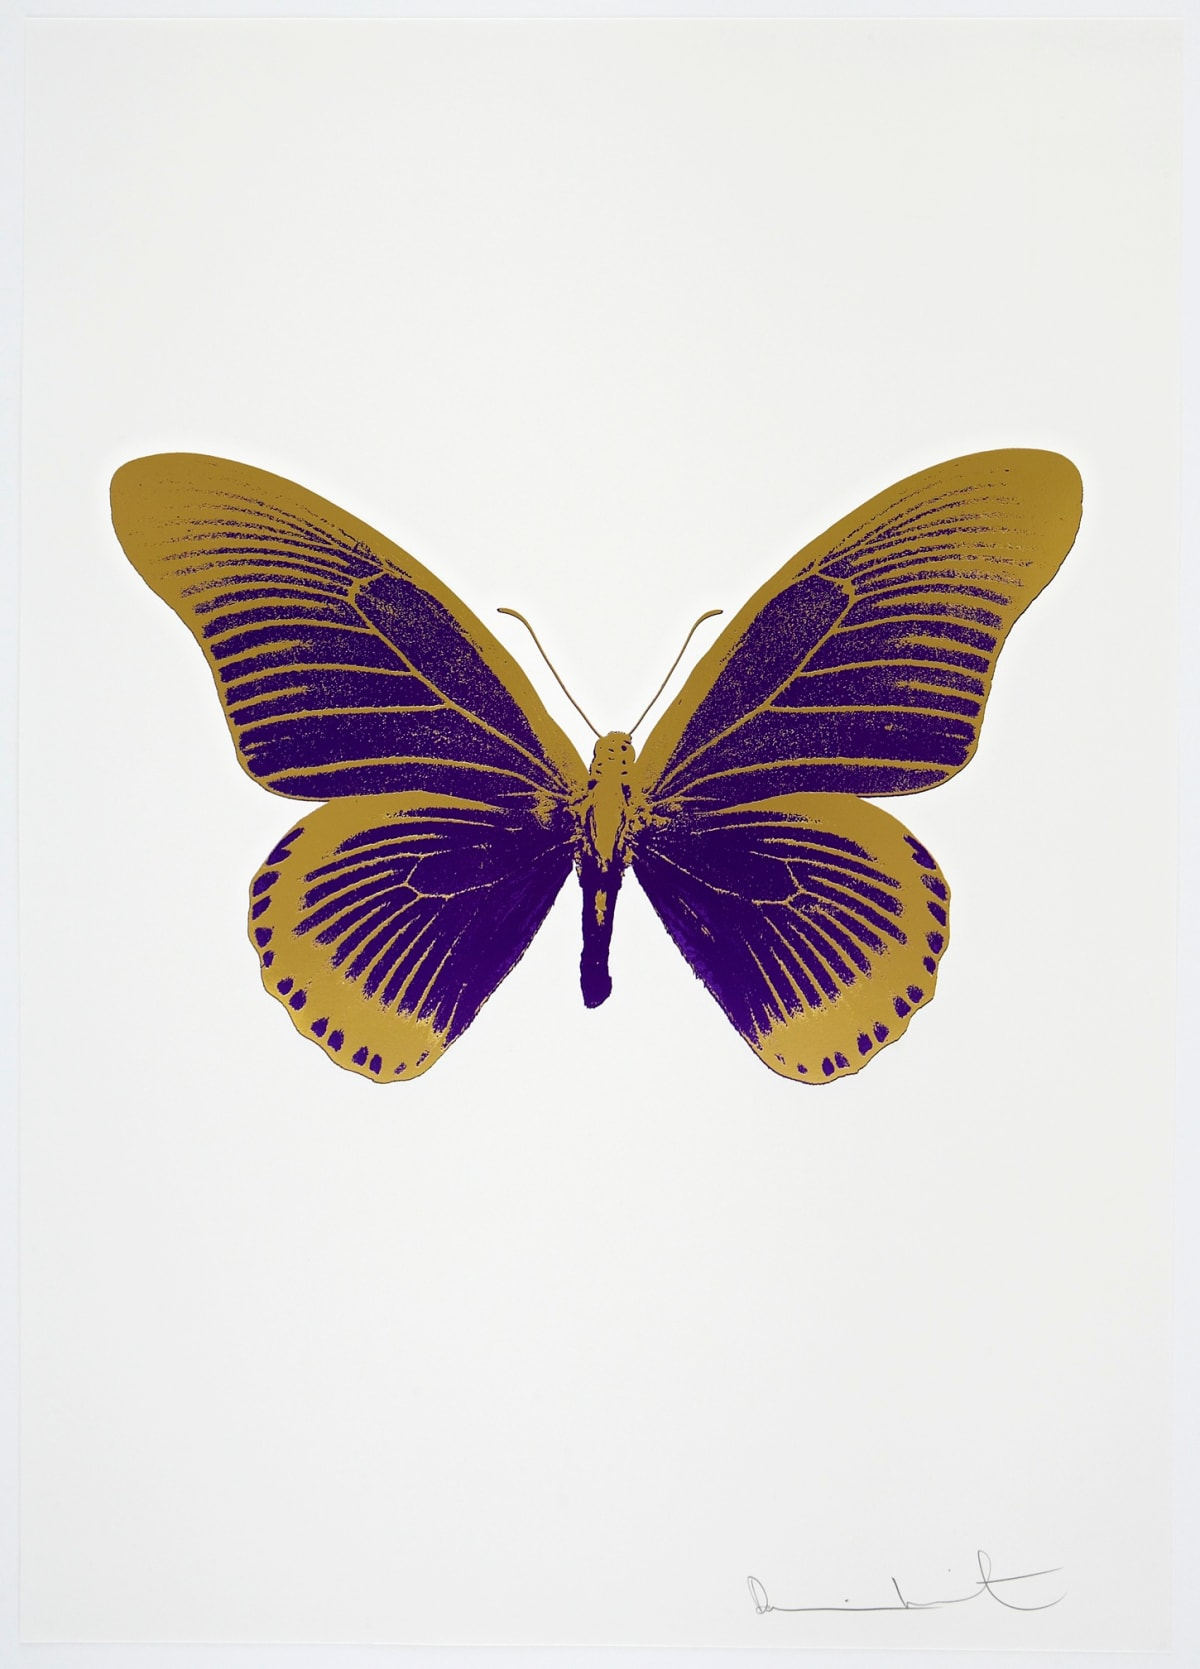 Damien Hirst The Souls IV - Imperial Purple/Oriental Gold, 2010 2 colour foil block on 300gsm Arches 88 archival paper. Signed and numbered. Published by Paul Stolper and Other Criteria 72 x 51cm OC8001 / 1418-24 Edition of 15